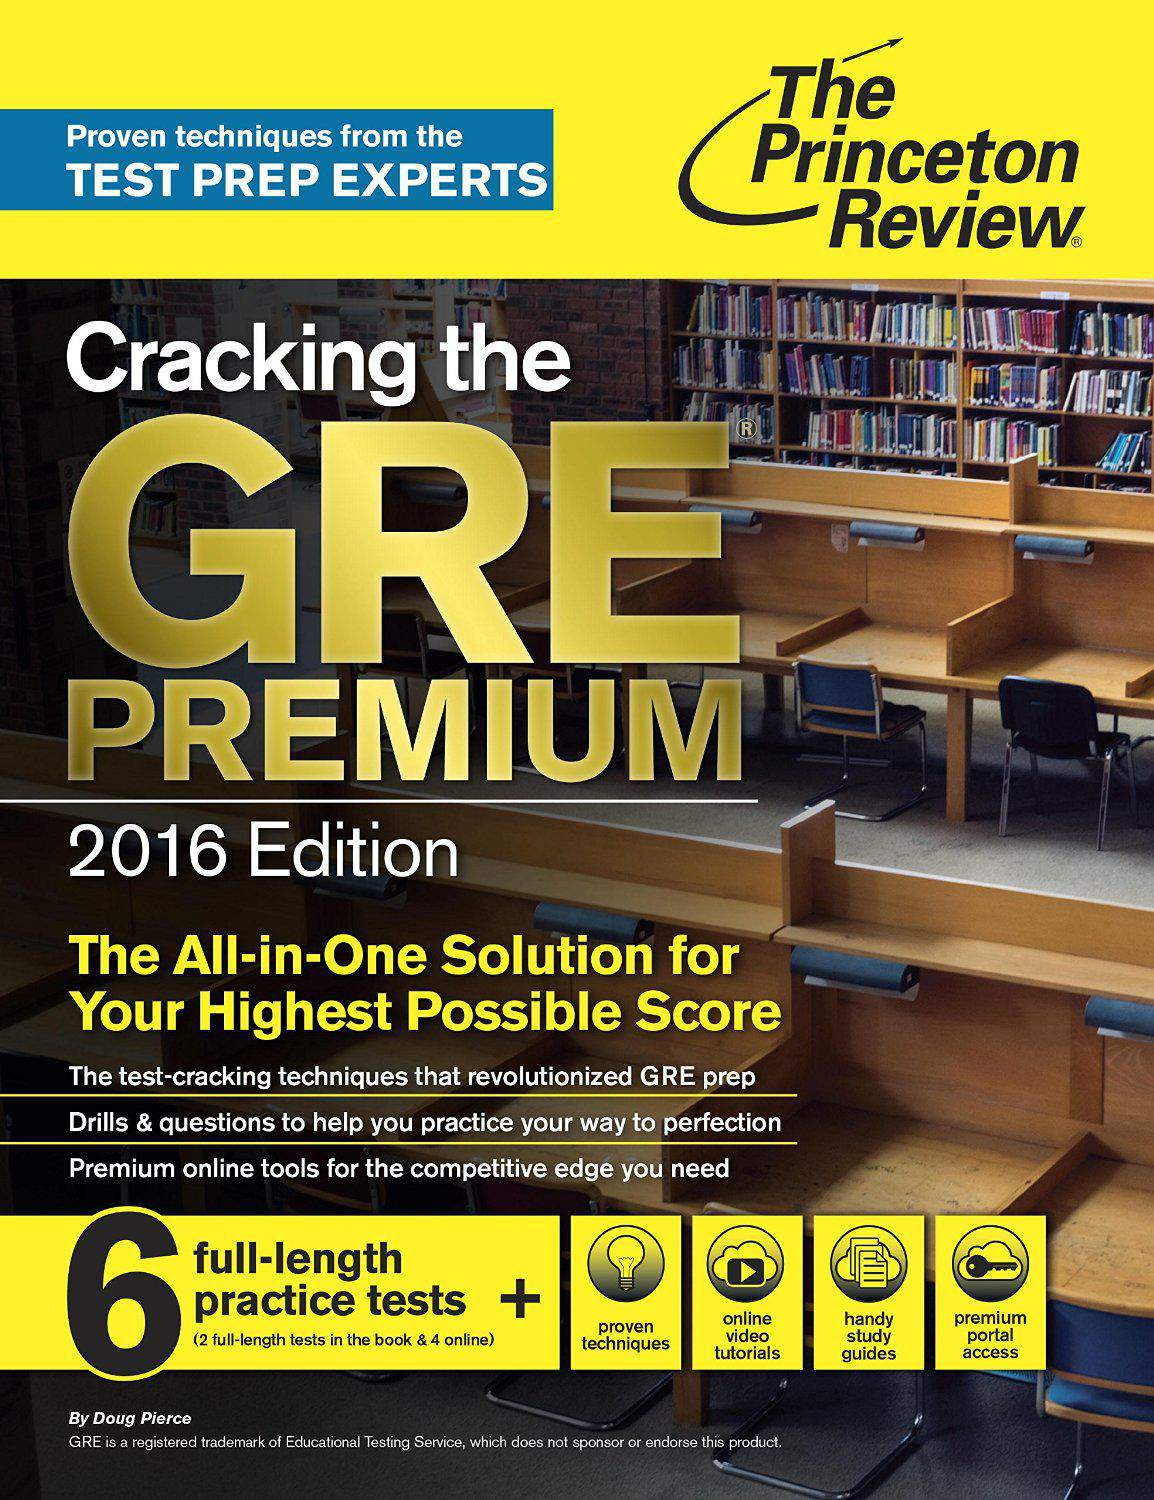 Cracking the GRE Premium Edition 2016 Graduate School Test Preparation